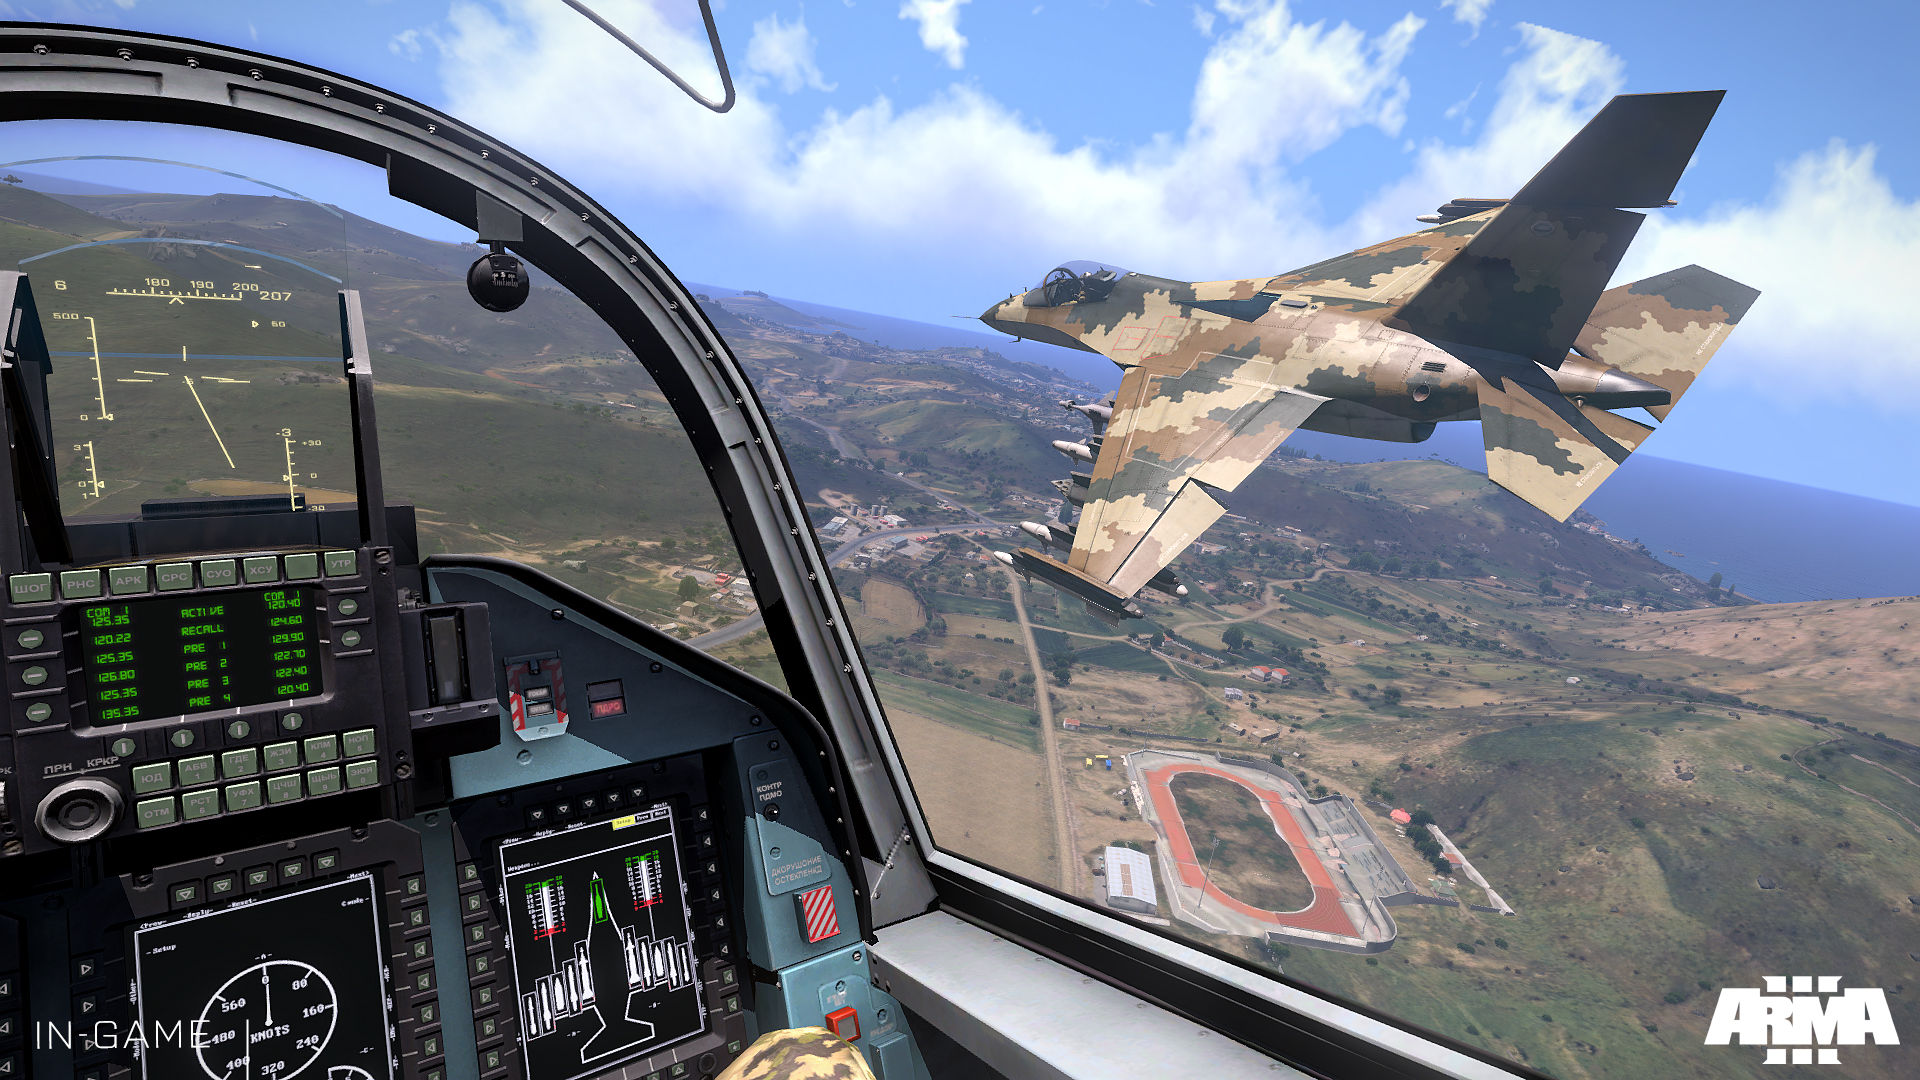 dayz helicopter with Scanning The Horizon Arma 3 In 2015 on Watch in addition Big together with Take On Helicopters Hinds additionally Scanning The Horizon Arma 3 In 2015 in addition Details.